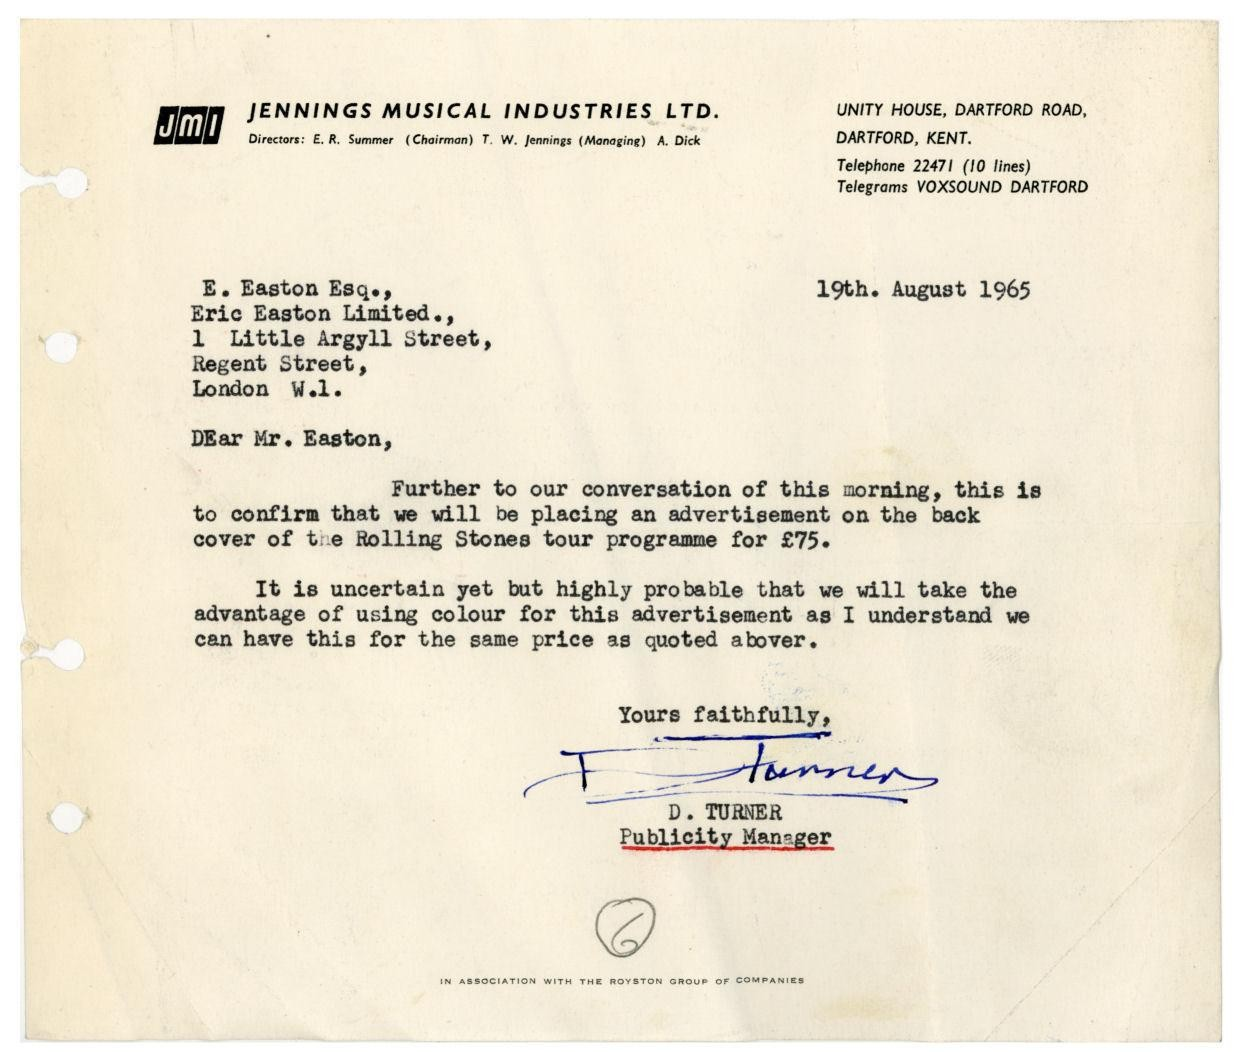 Jennings Musical Industries letter, 1965